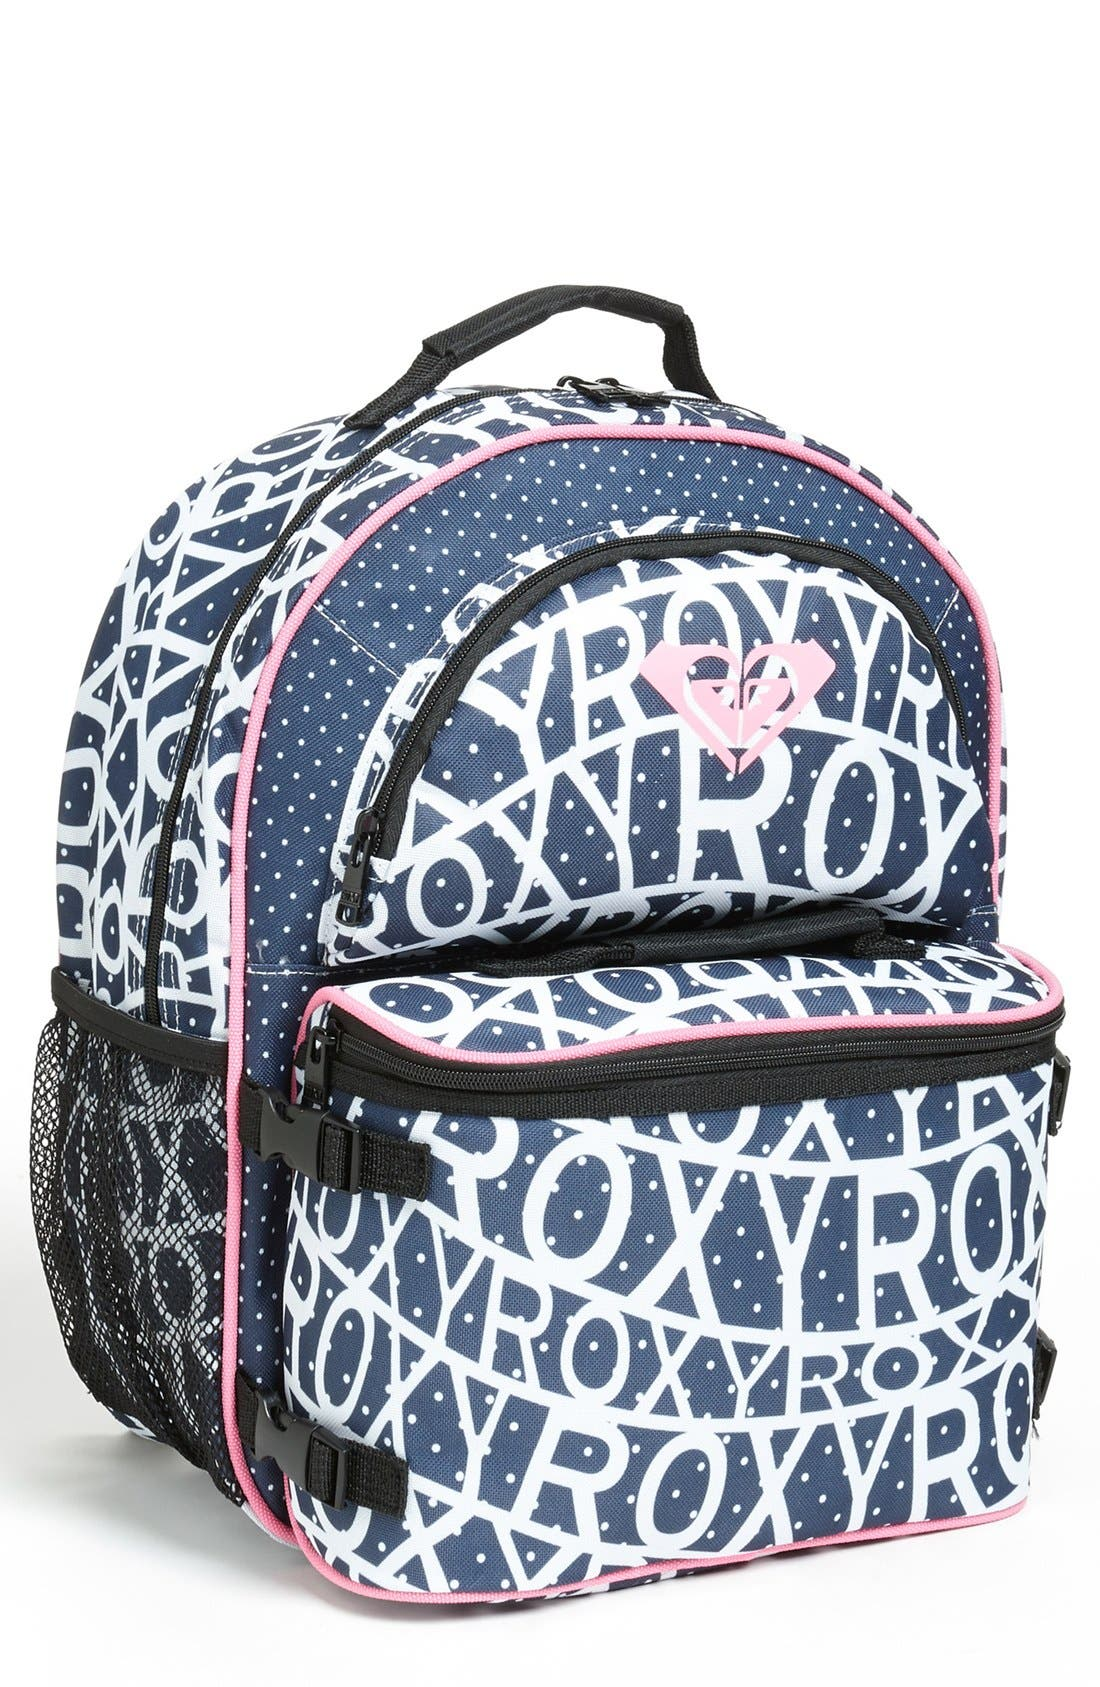 Alternate Image 1 Selected - Roxy 'Bunny' Backpack (Girls)